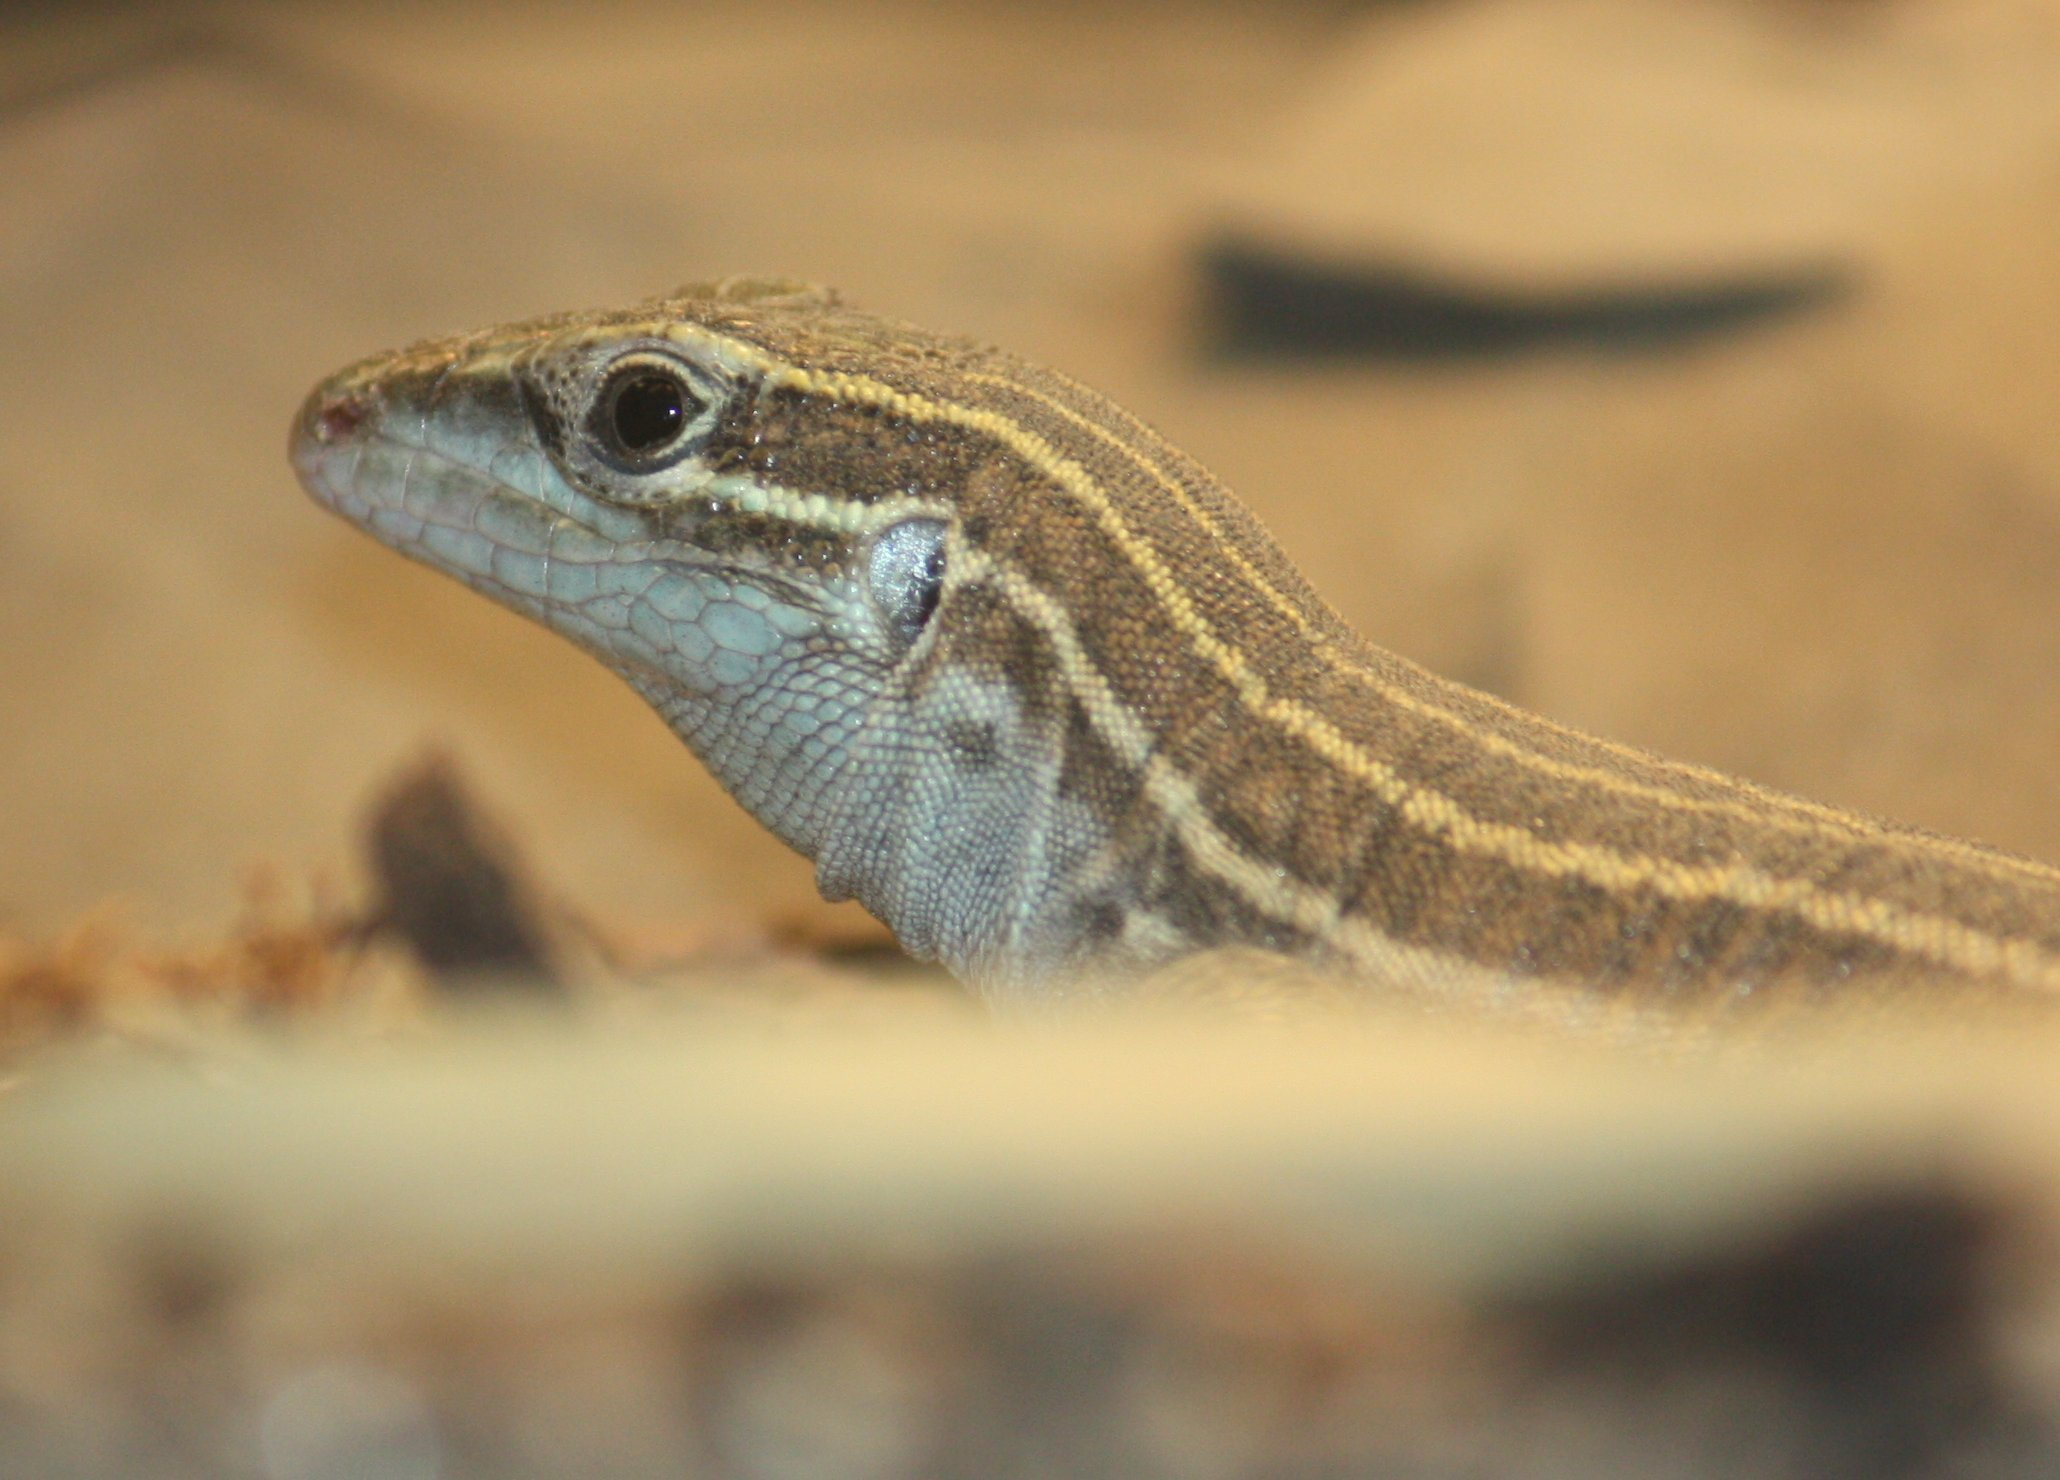 Some species of whiptail lizards, such as this desert grassland whiptail lizard, reproduce exclusively via parthenogenesis. Image By Ltshears (Own work) [CC-BY-SA-3.0 (http://creativecommons.org/licenses/by-sa/3.0)], via Wikimedia Commons